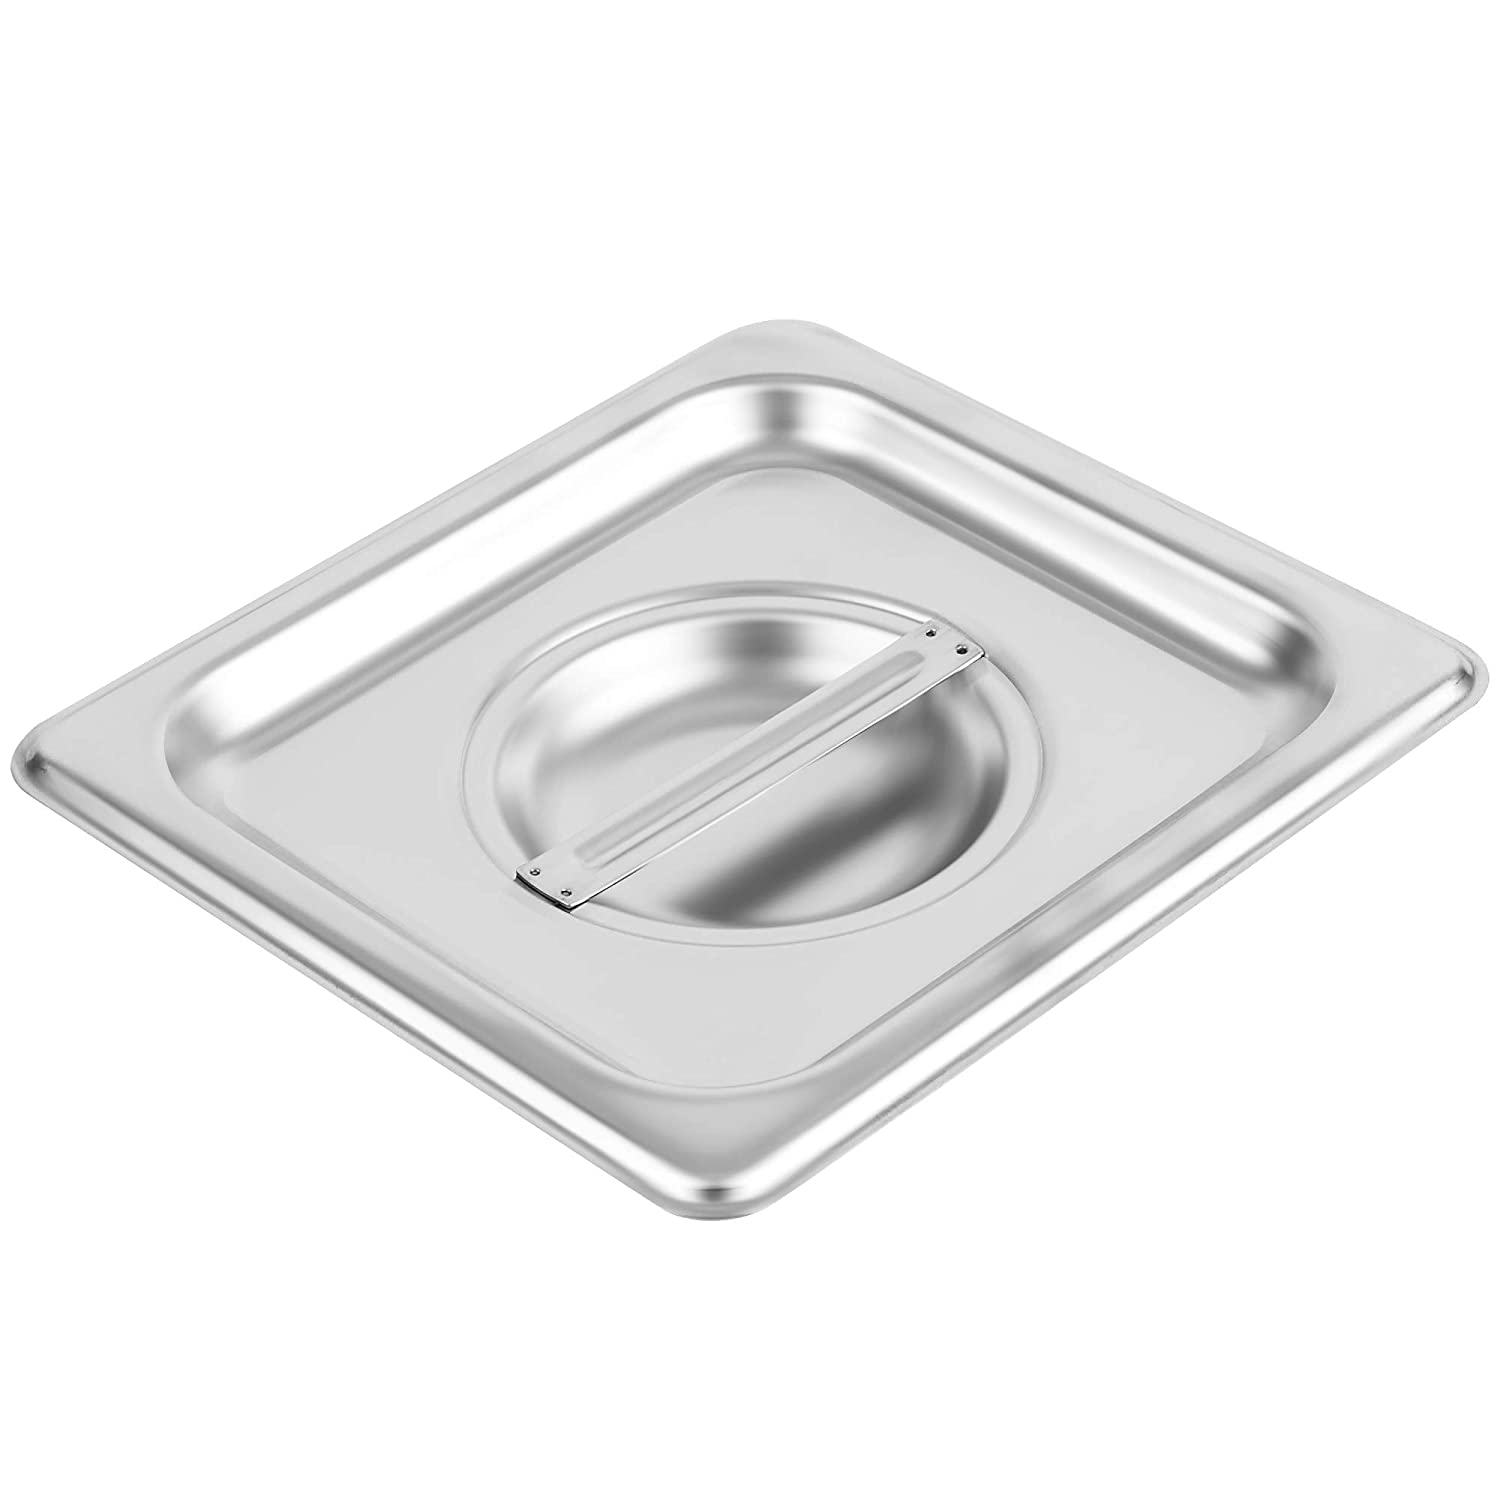 1/6 Size Stainless Steel Solid Steam Table Pan Cover, Pan Lids, Non-Stick Surface, Lid for 1/6 Size Steam Pans with Handle